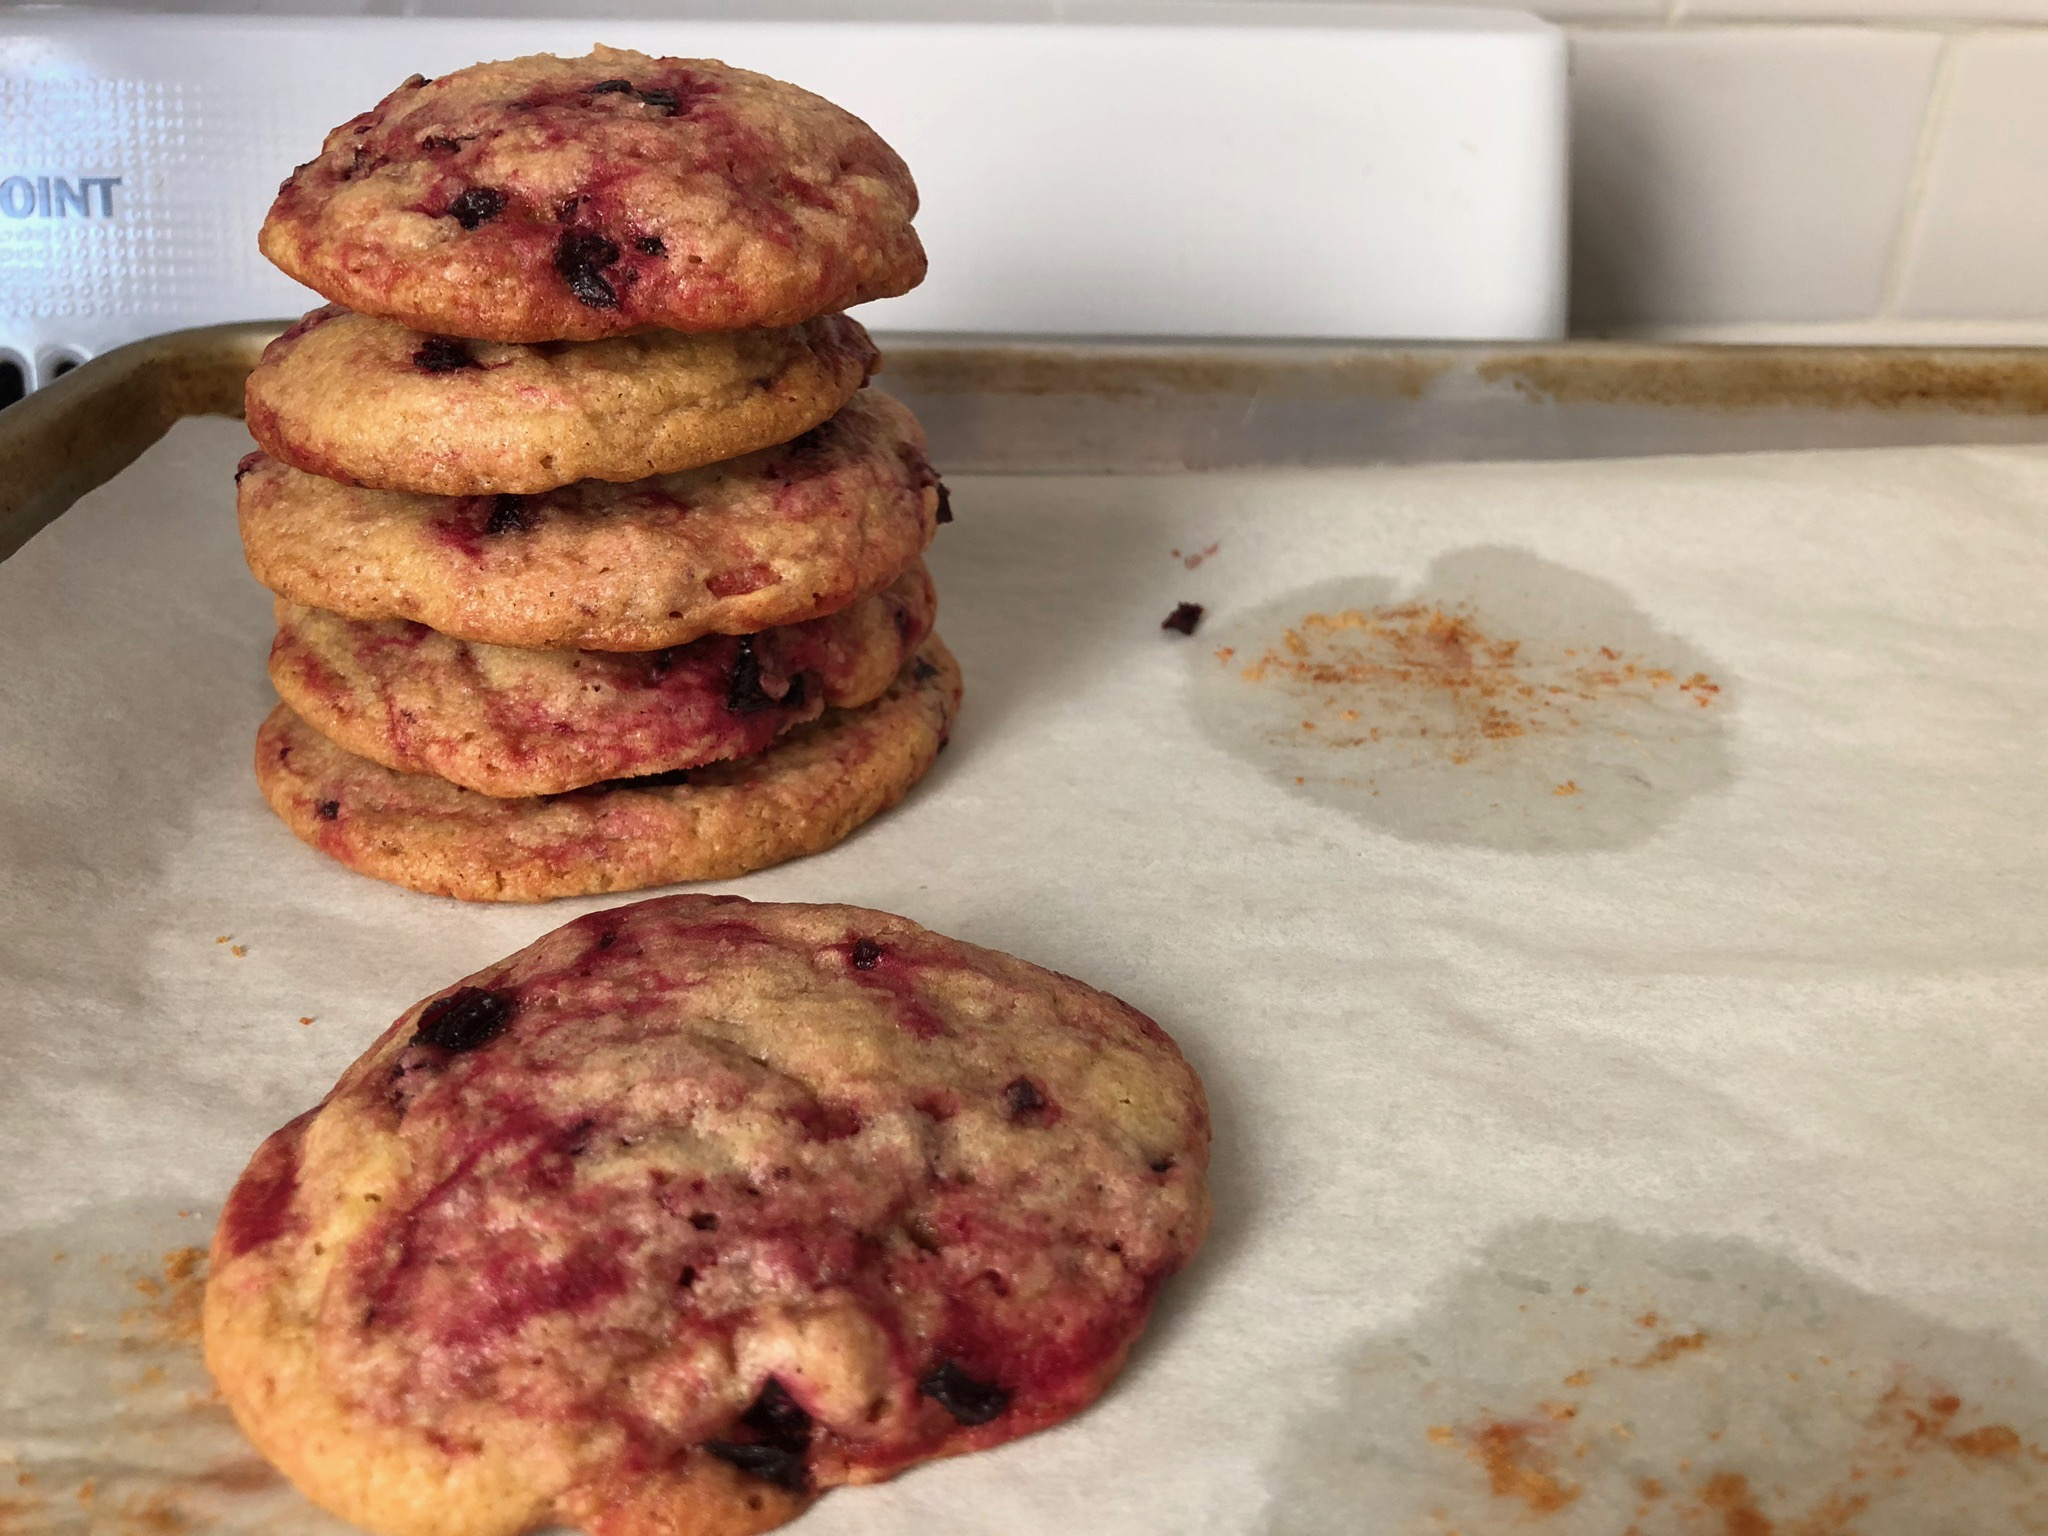 peanut butter and beet cookies that resemble peanut butter and jelly